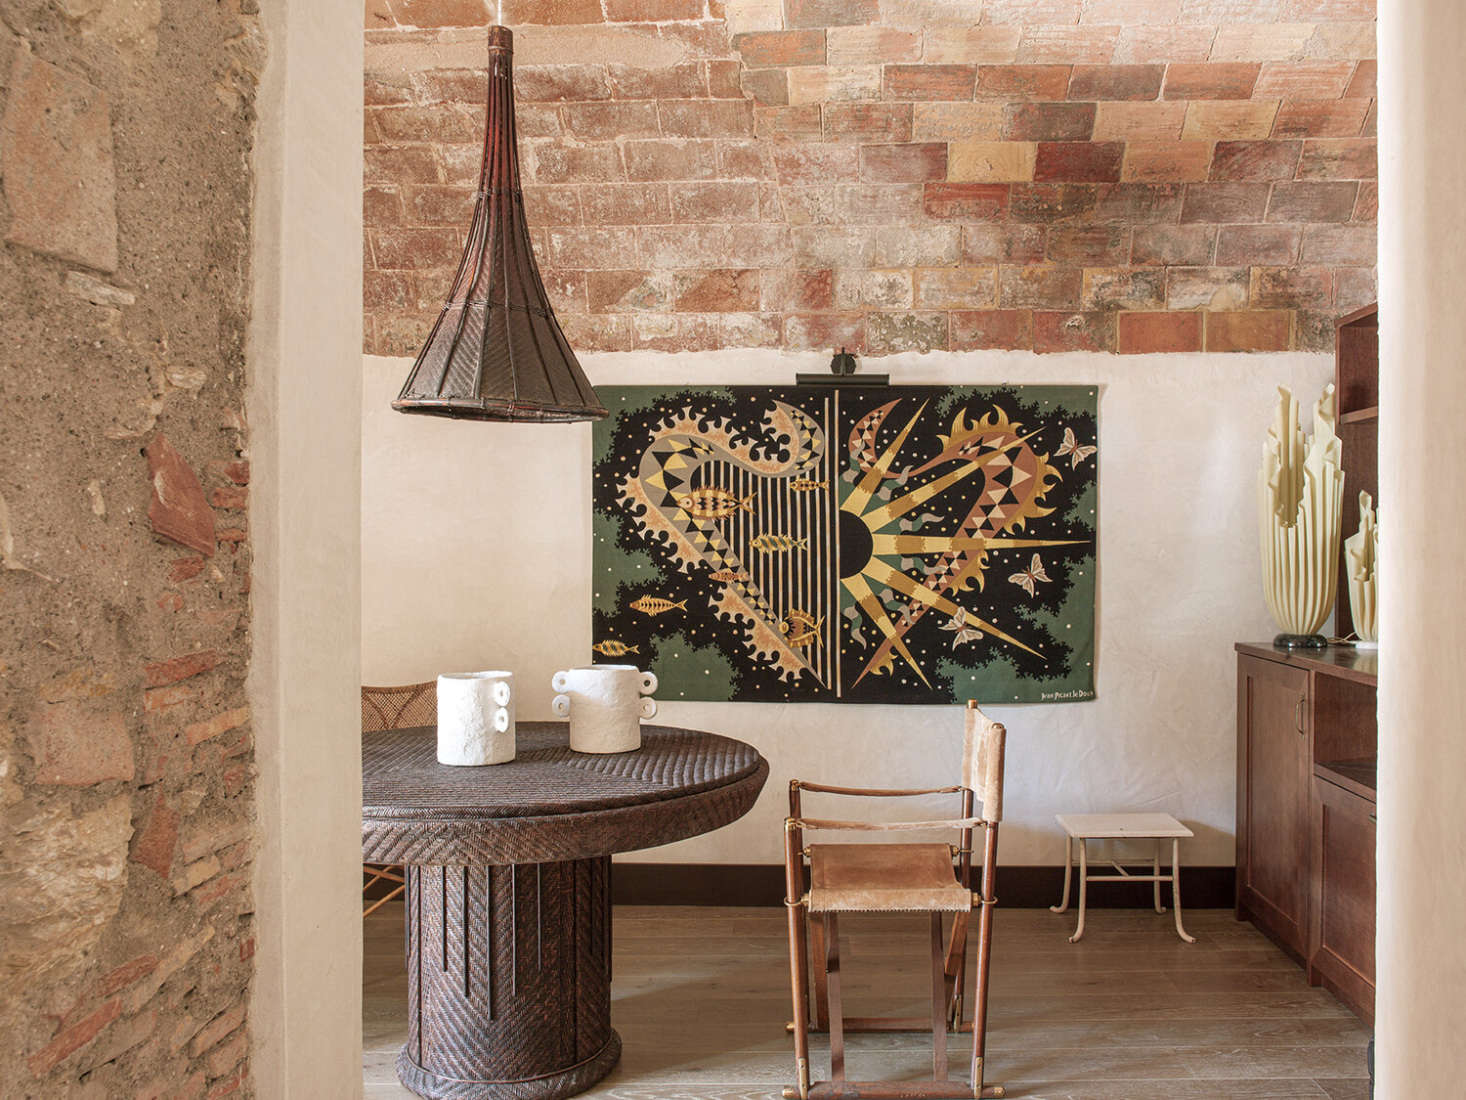 Most popular post of the week: Margot takes a visit to La Bionda Hotel in Begur, Spain, by Quintana Partners.